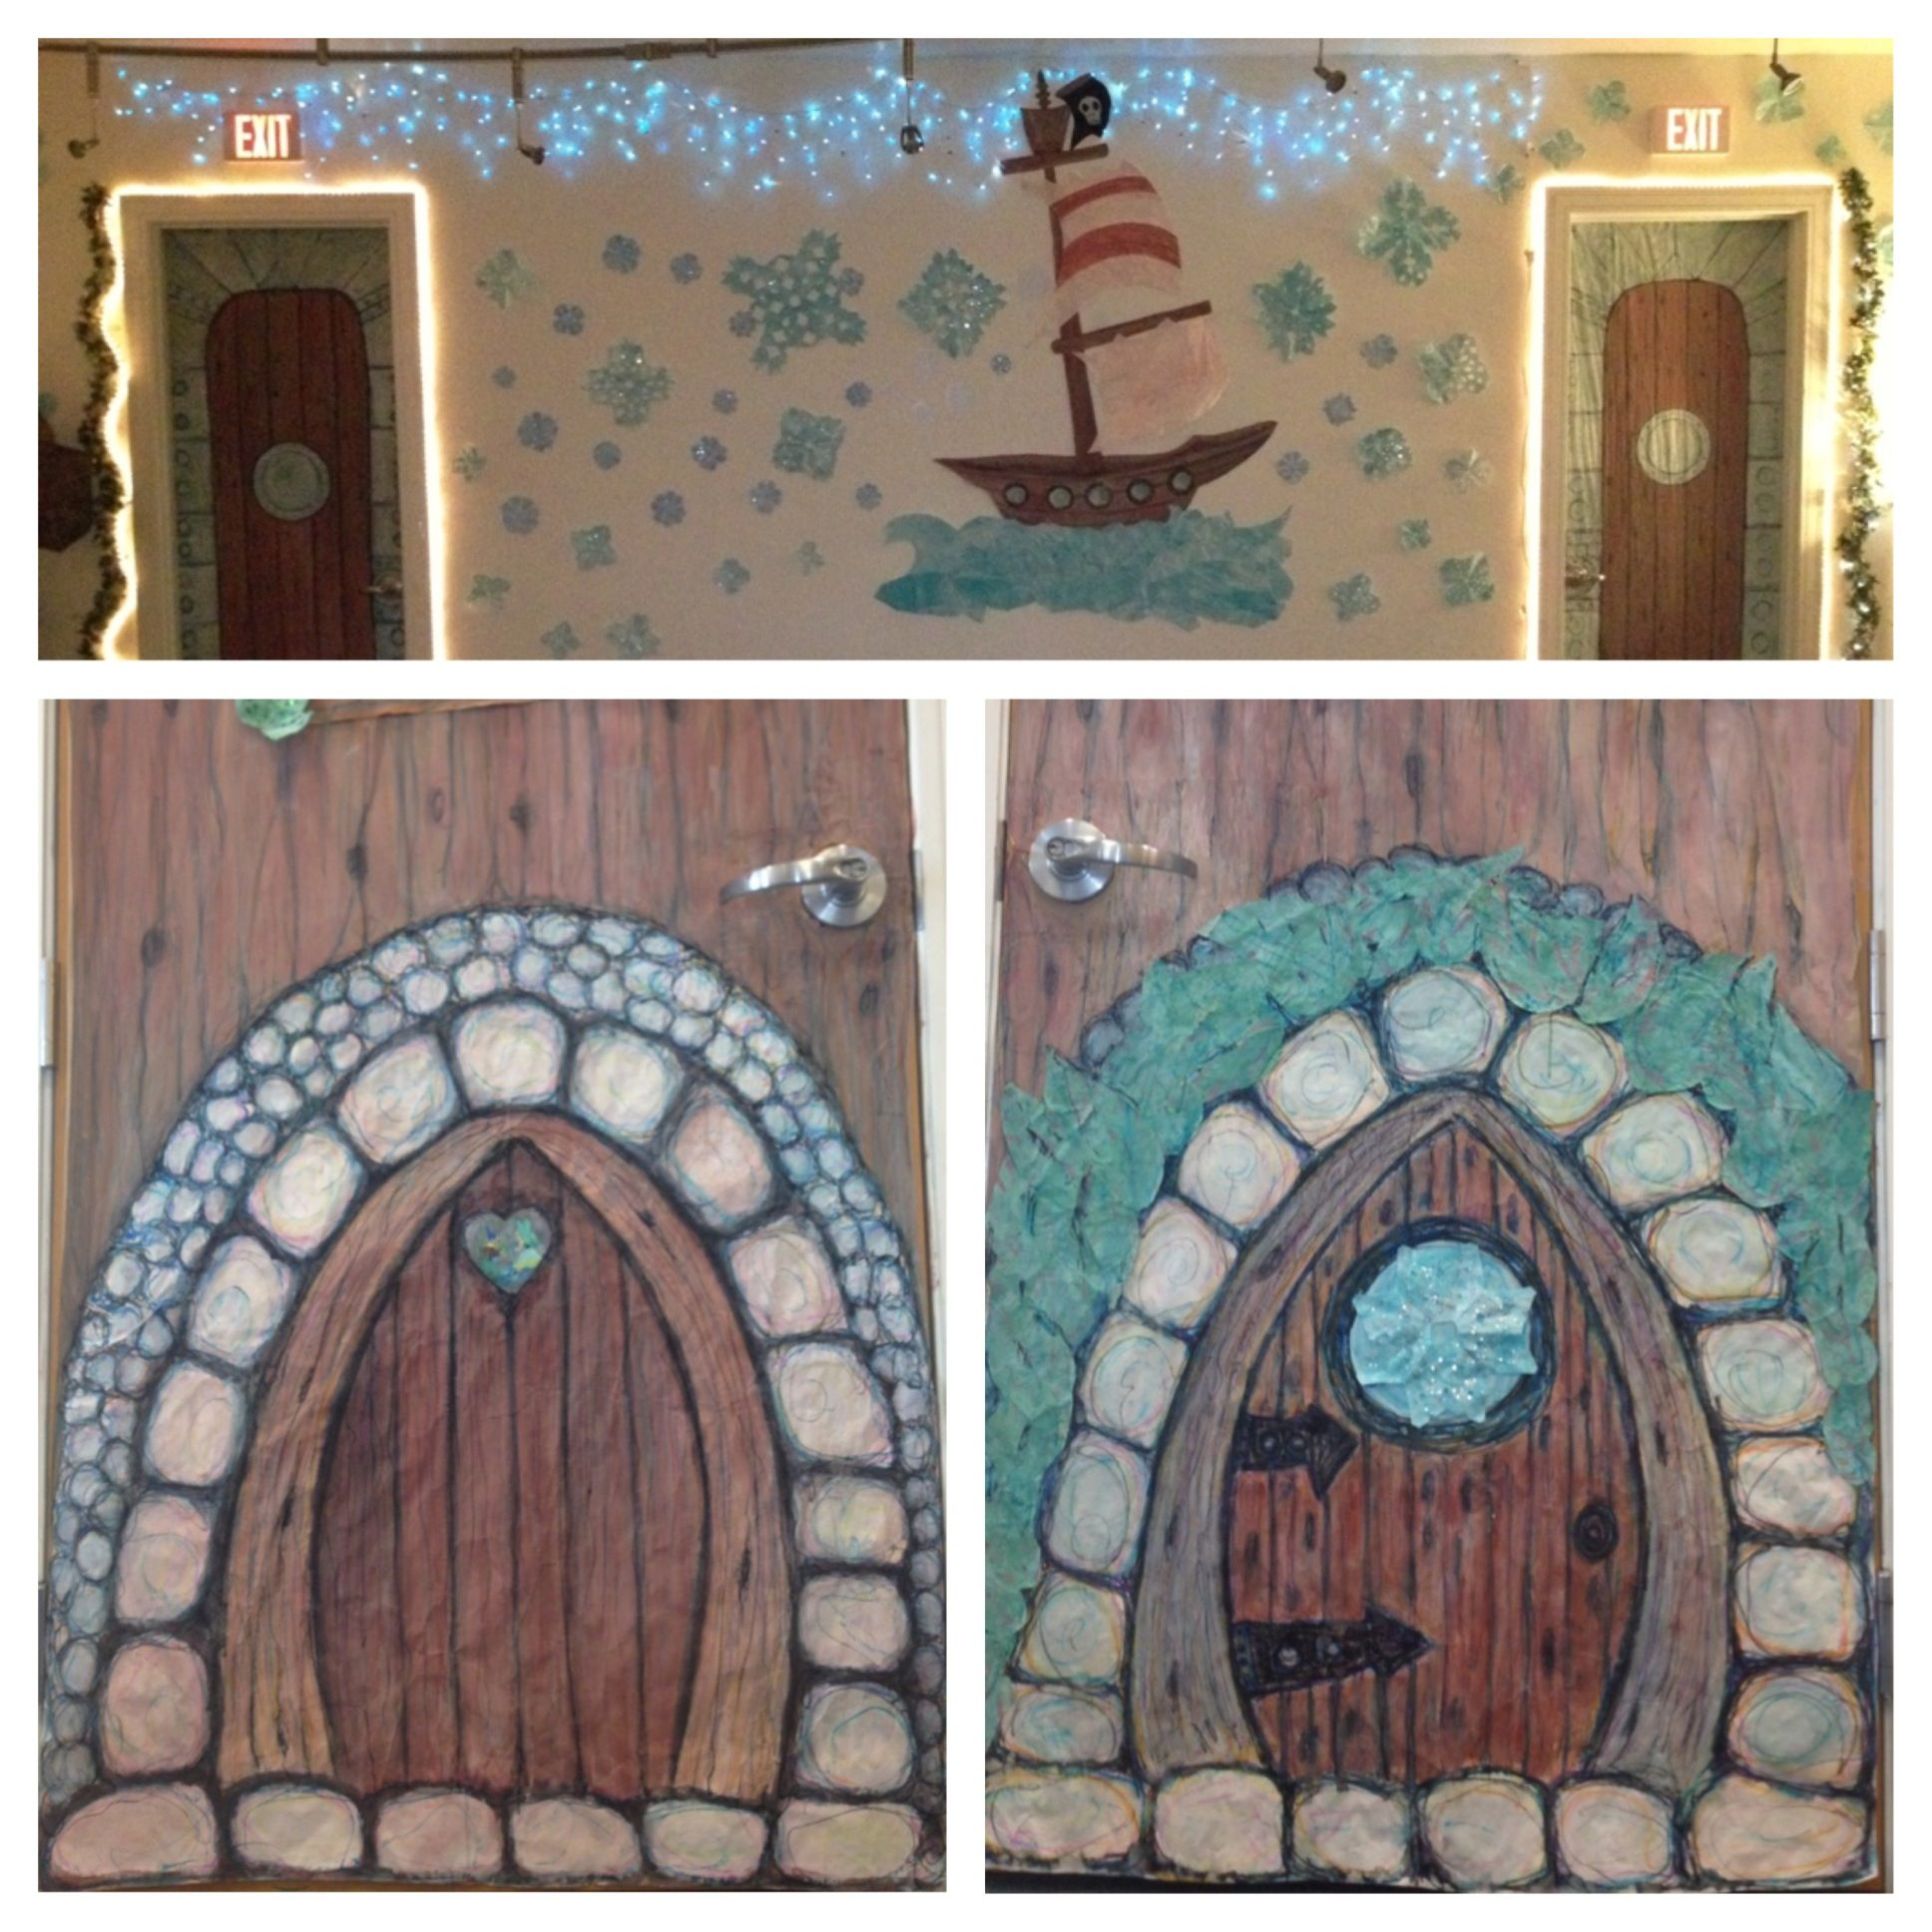 Once upon a story hobbit doors pirate ship u doors by jeanne